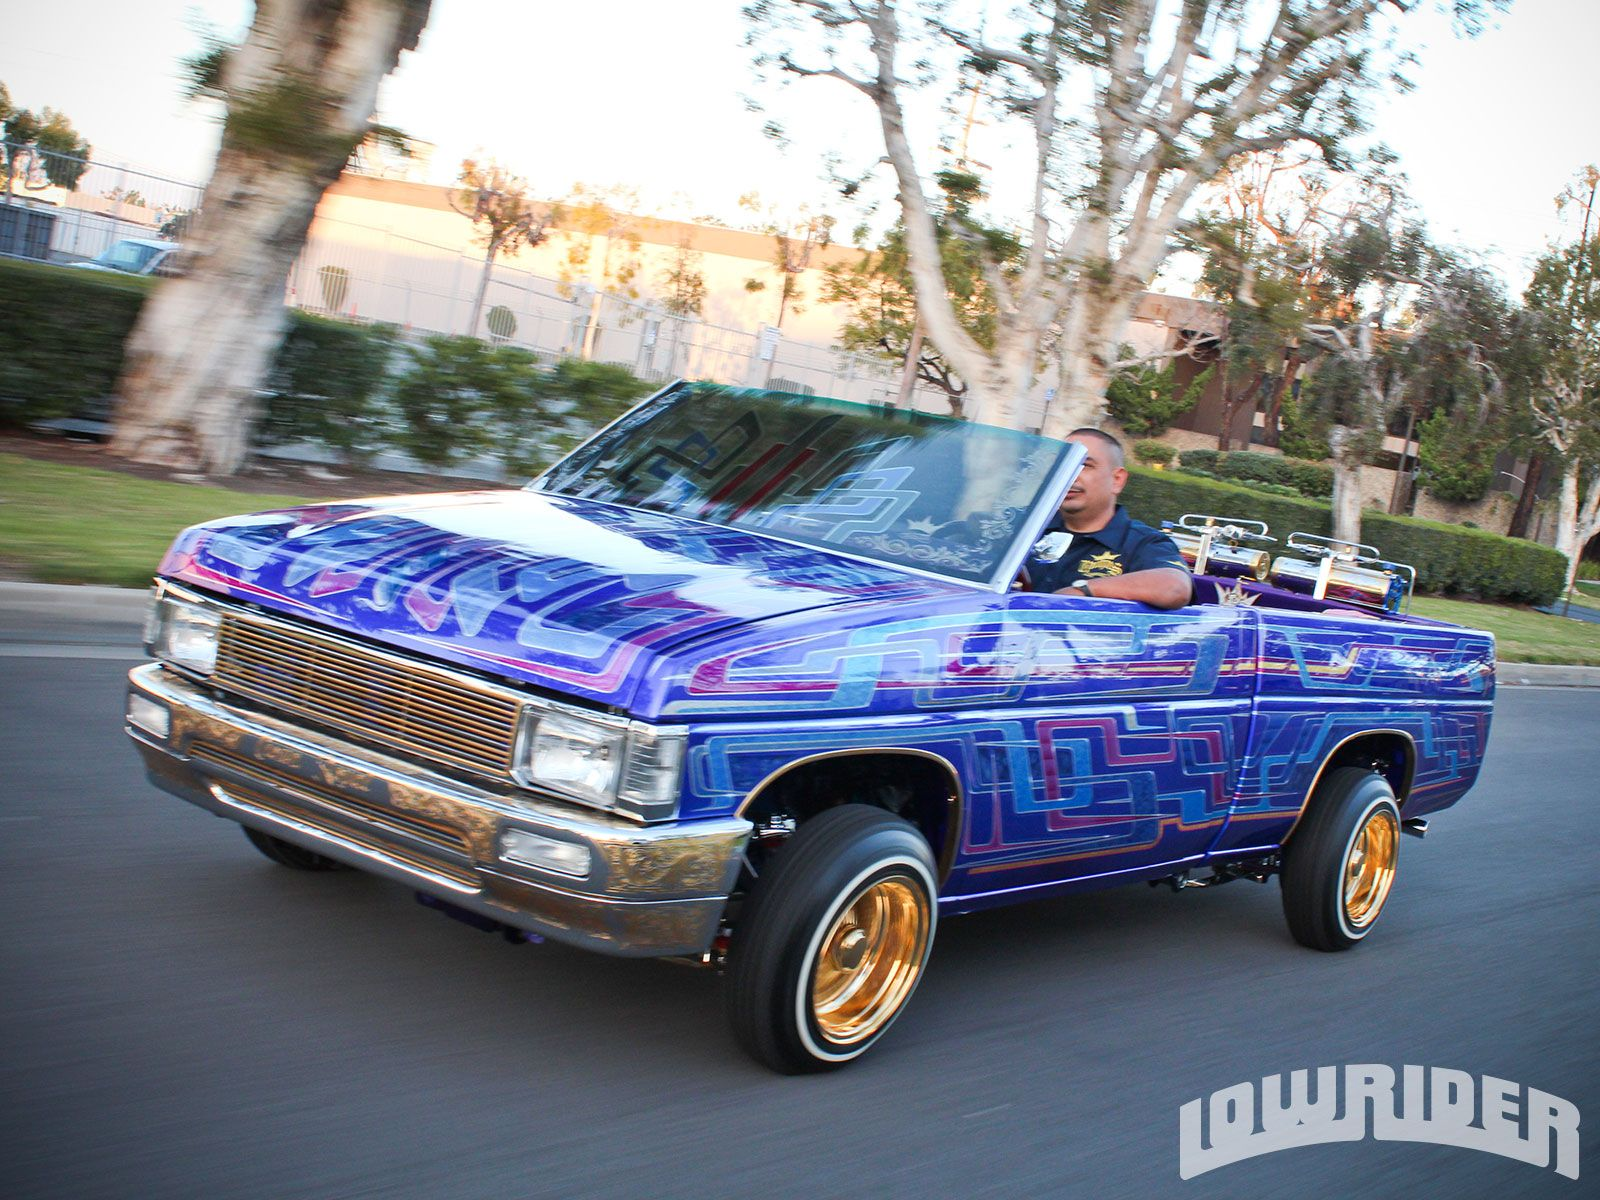 Lowrider Cars And Trucks WIth Gold And Chrome Rims ...